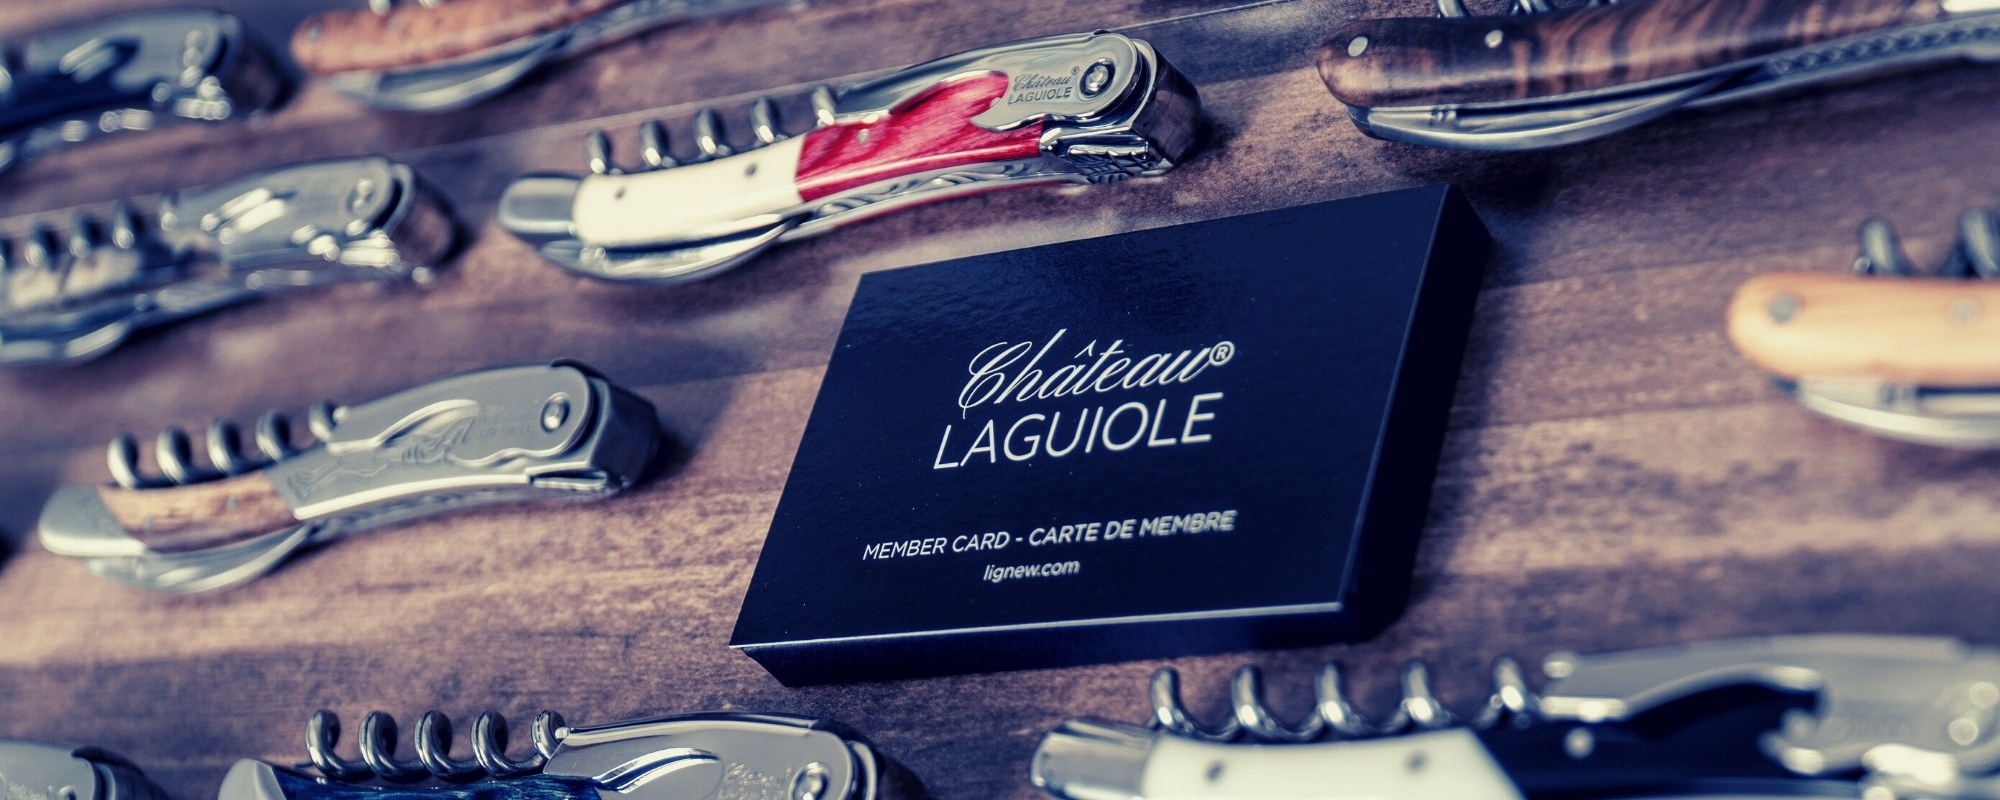 Chateau Laguiole handmade corkscrews collection (new version)